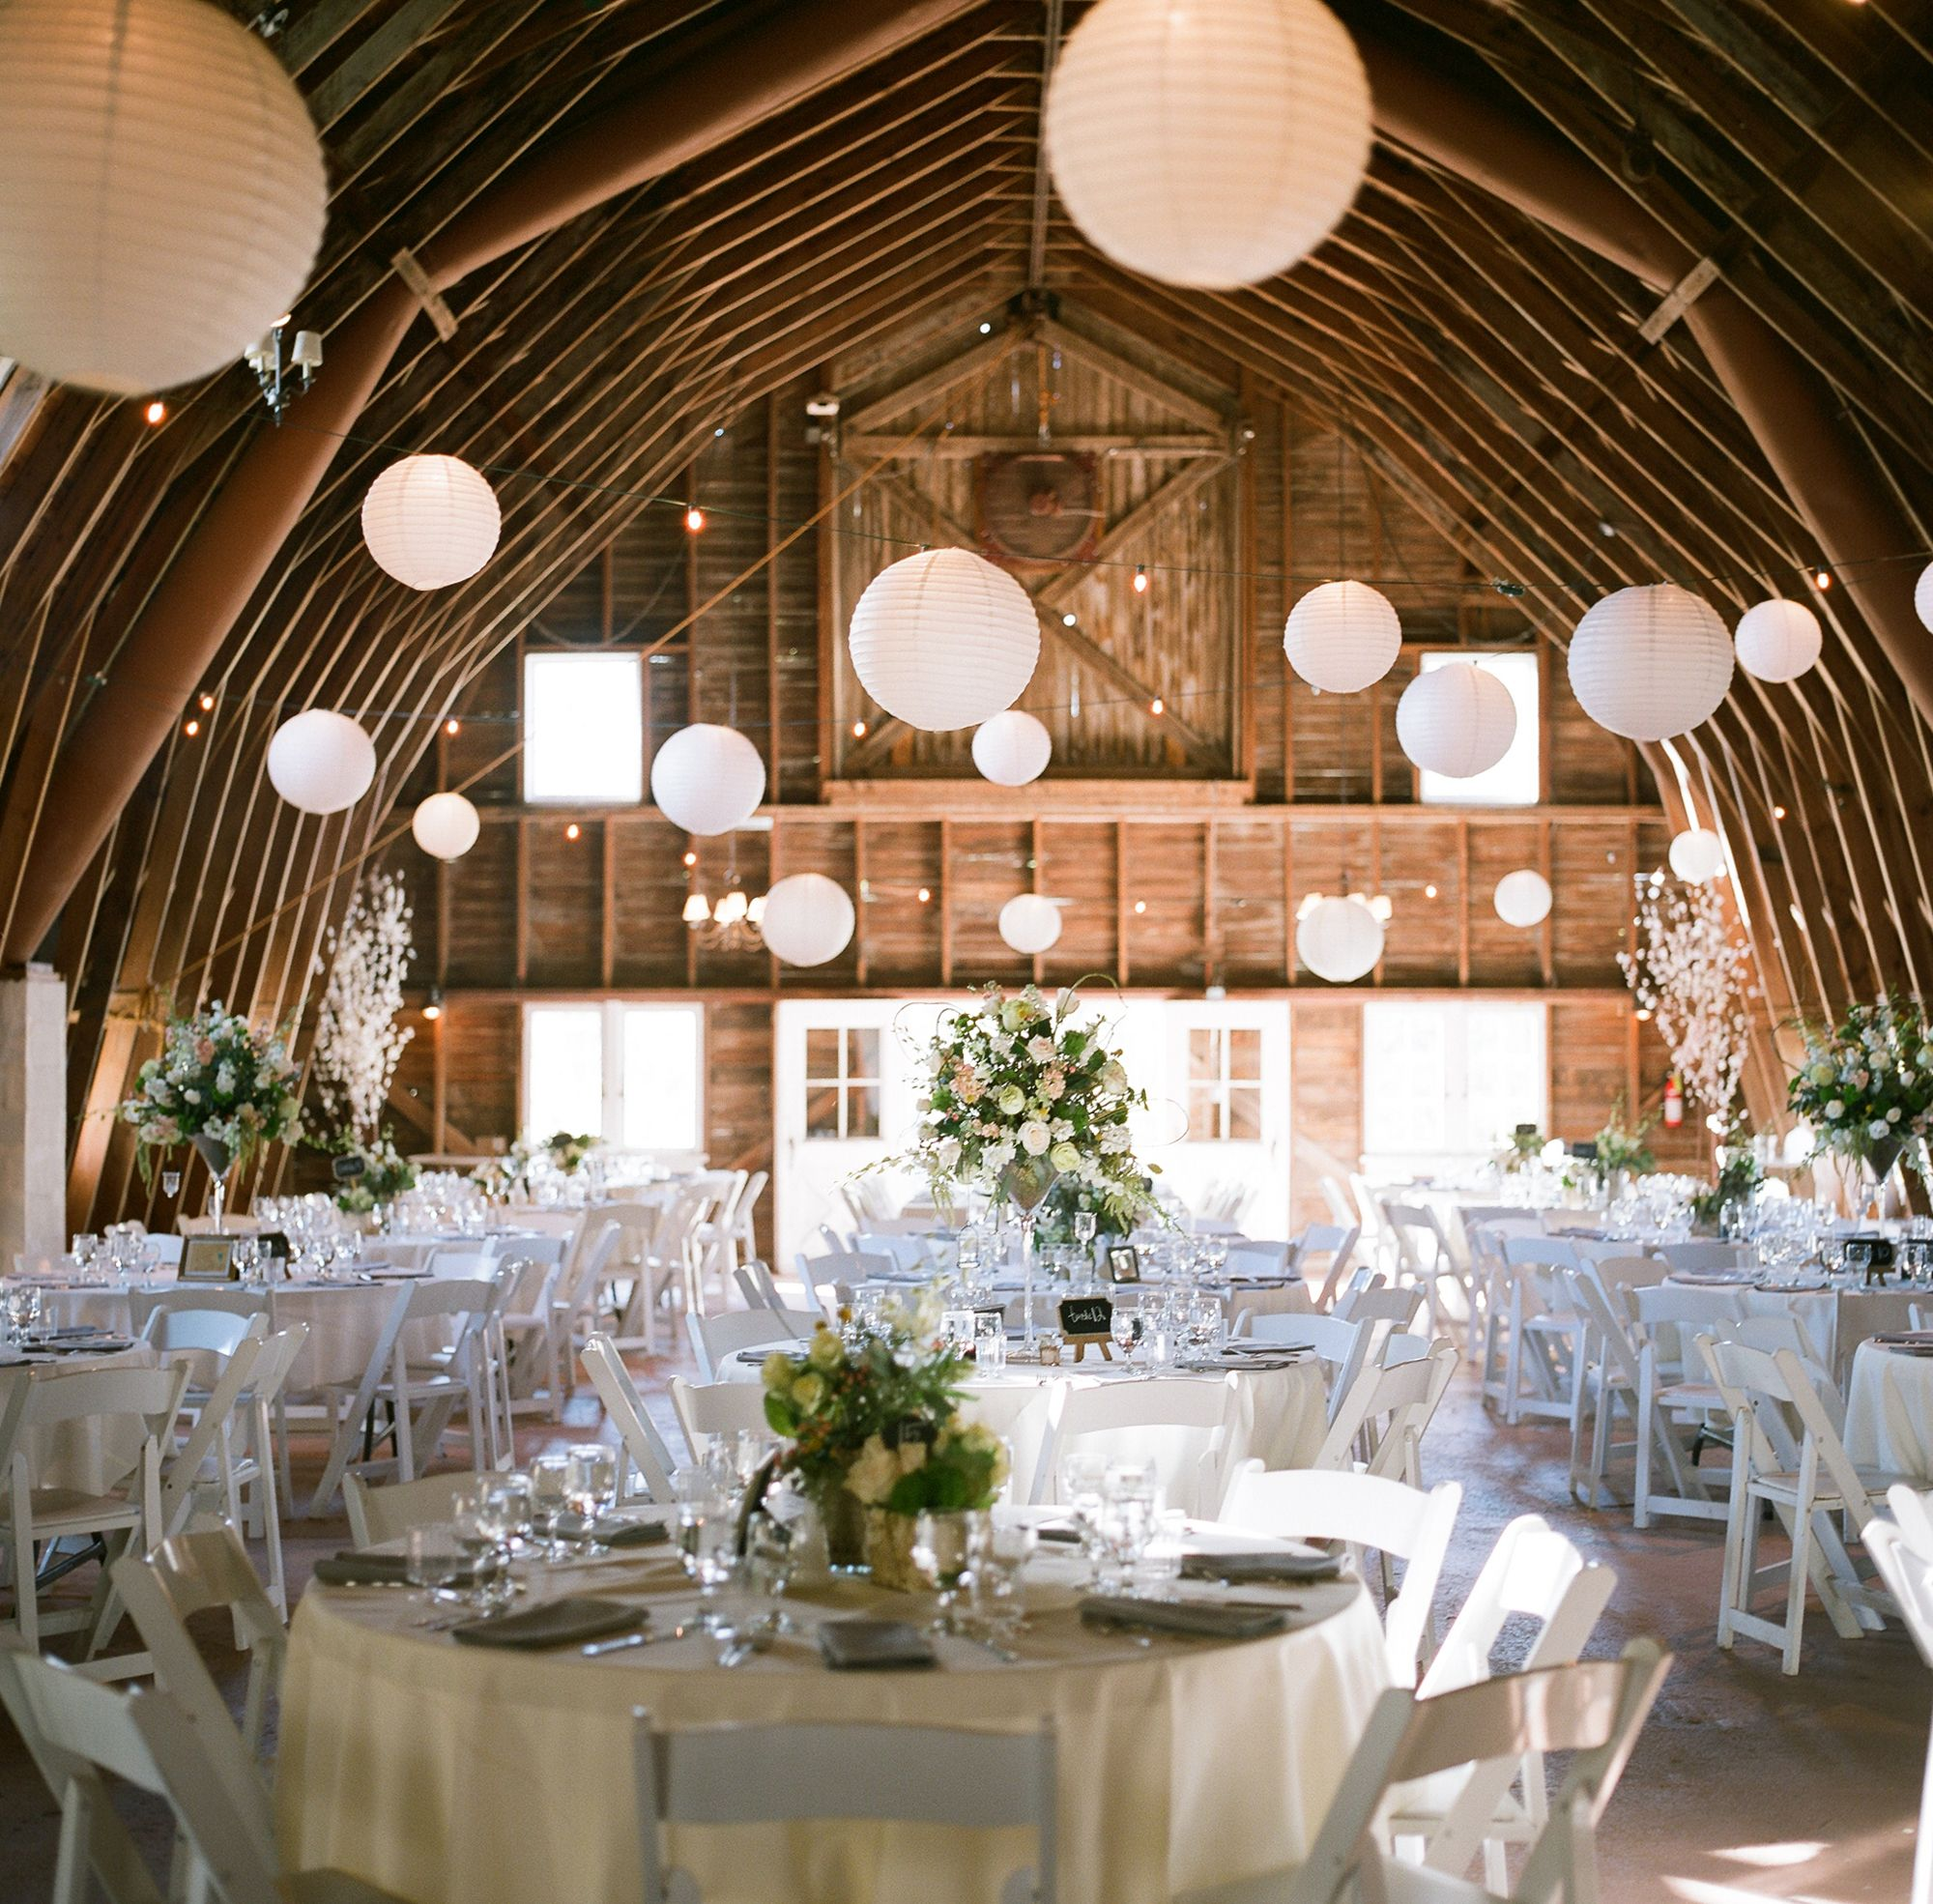 Blue Dress Barn Wedding Reception with Hanging